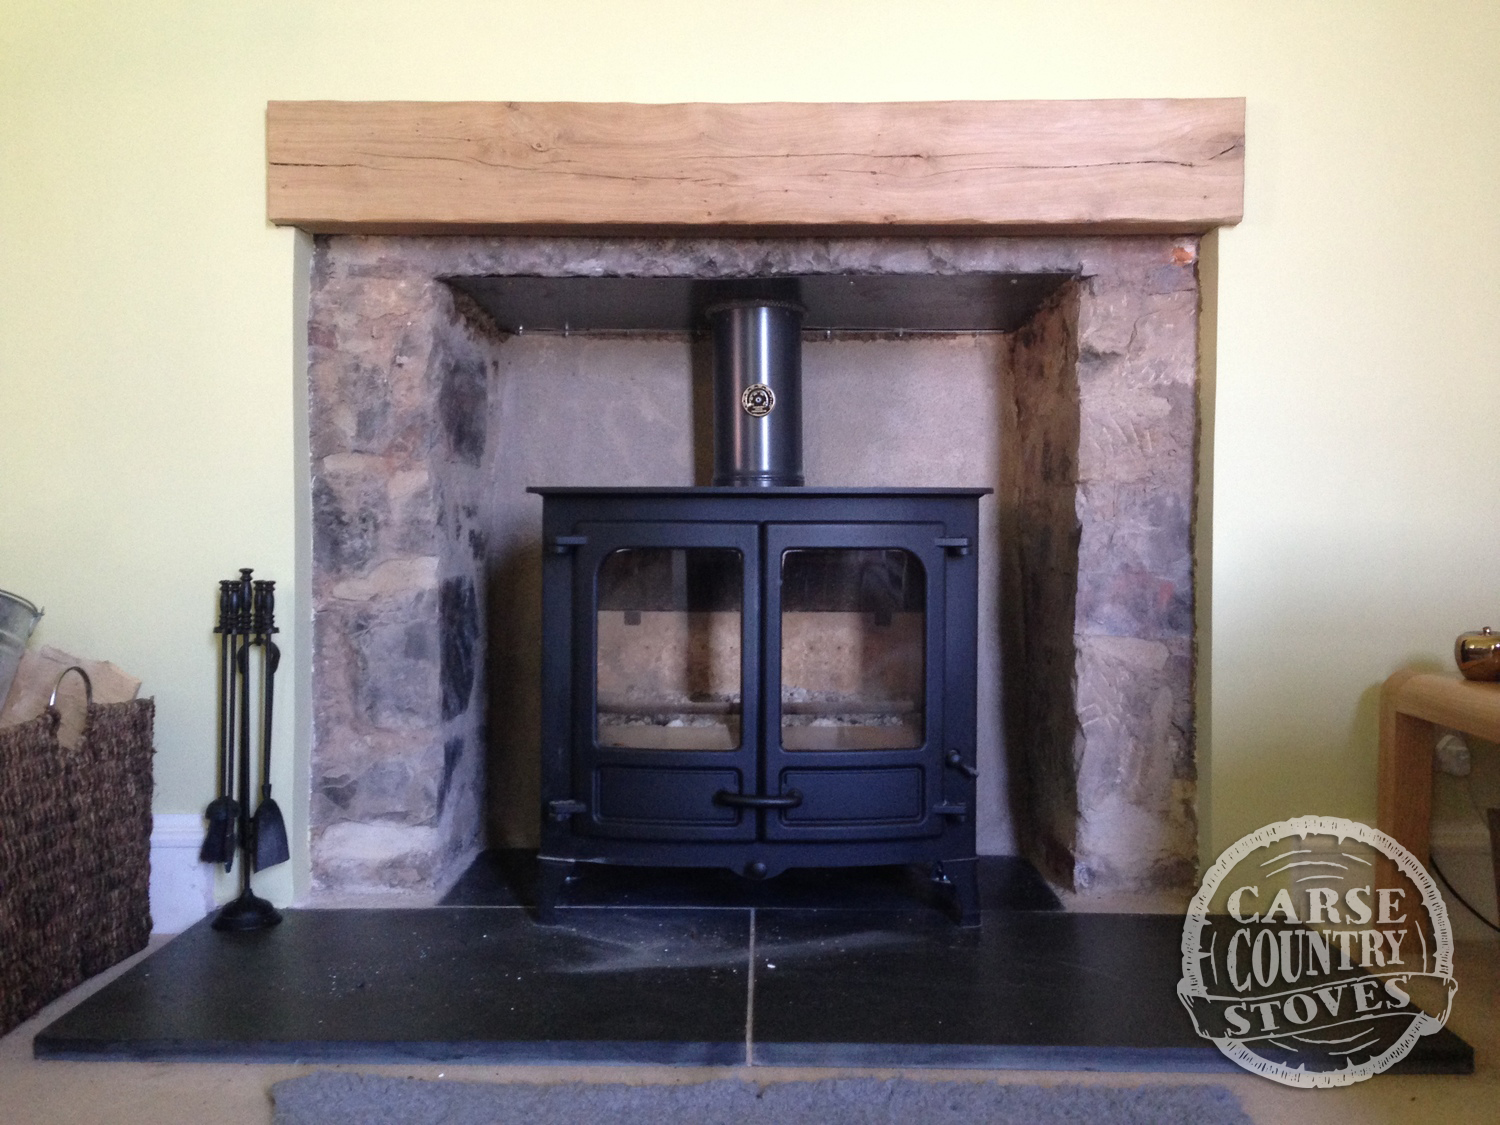 Carse Country Stoves IMG_3196.jpg